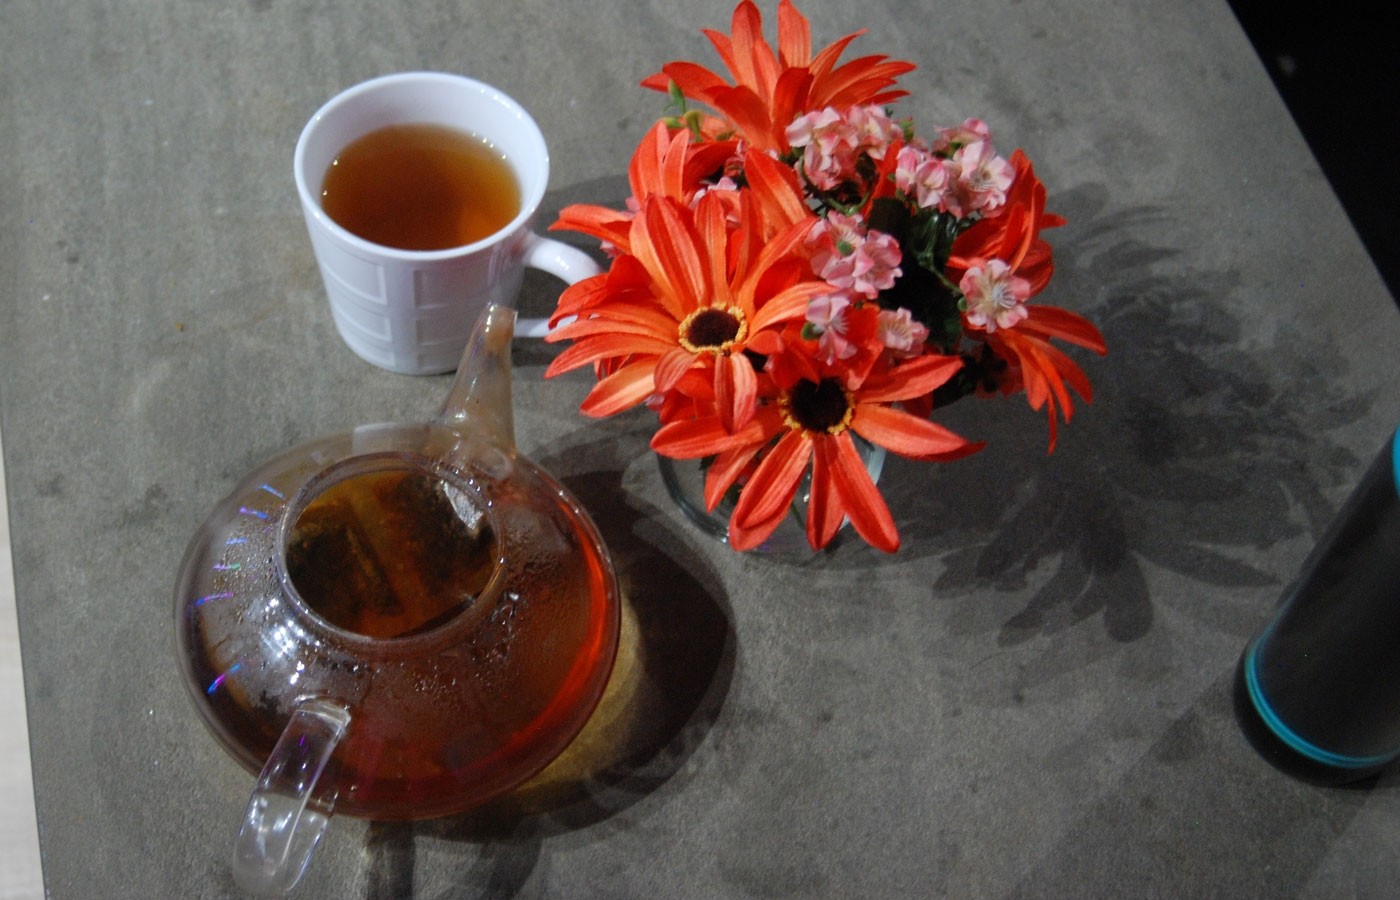 A pot of chai tea, a mug of chai tea, and orange and pink flowers on a table at VRcadia in London, Ontario. There is a grey and teal thermos in the corner.